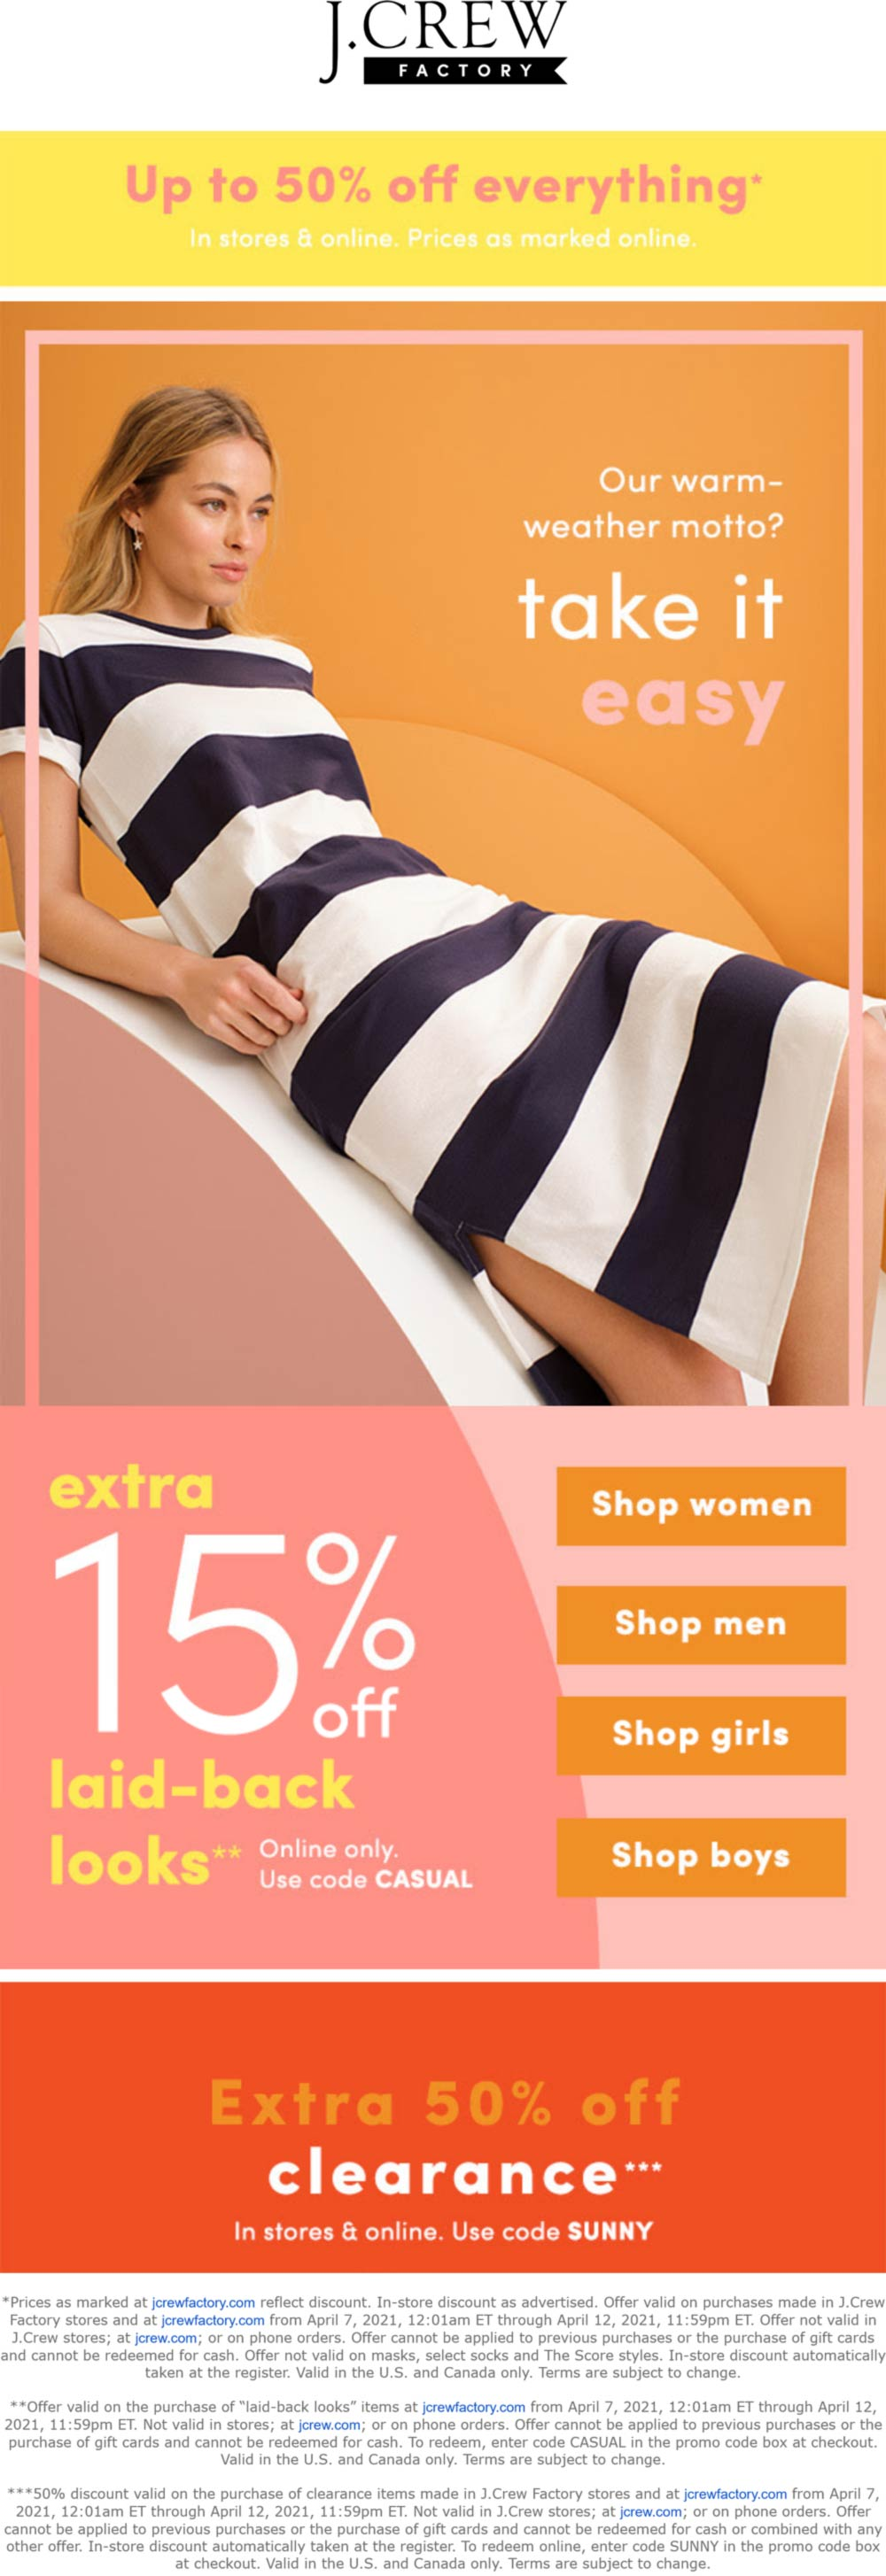 J.Crew Factory coupons & promo code for [May 2021]